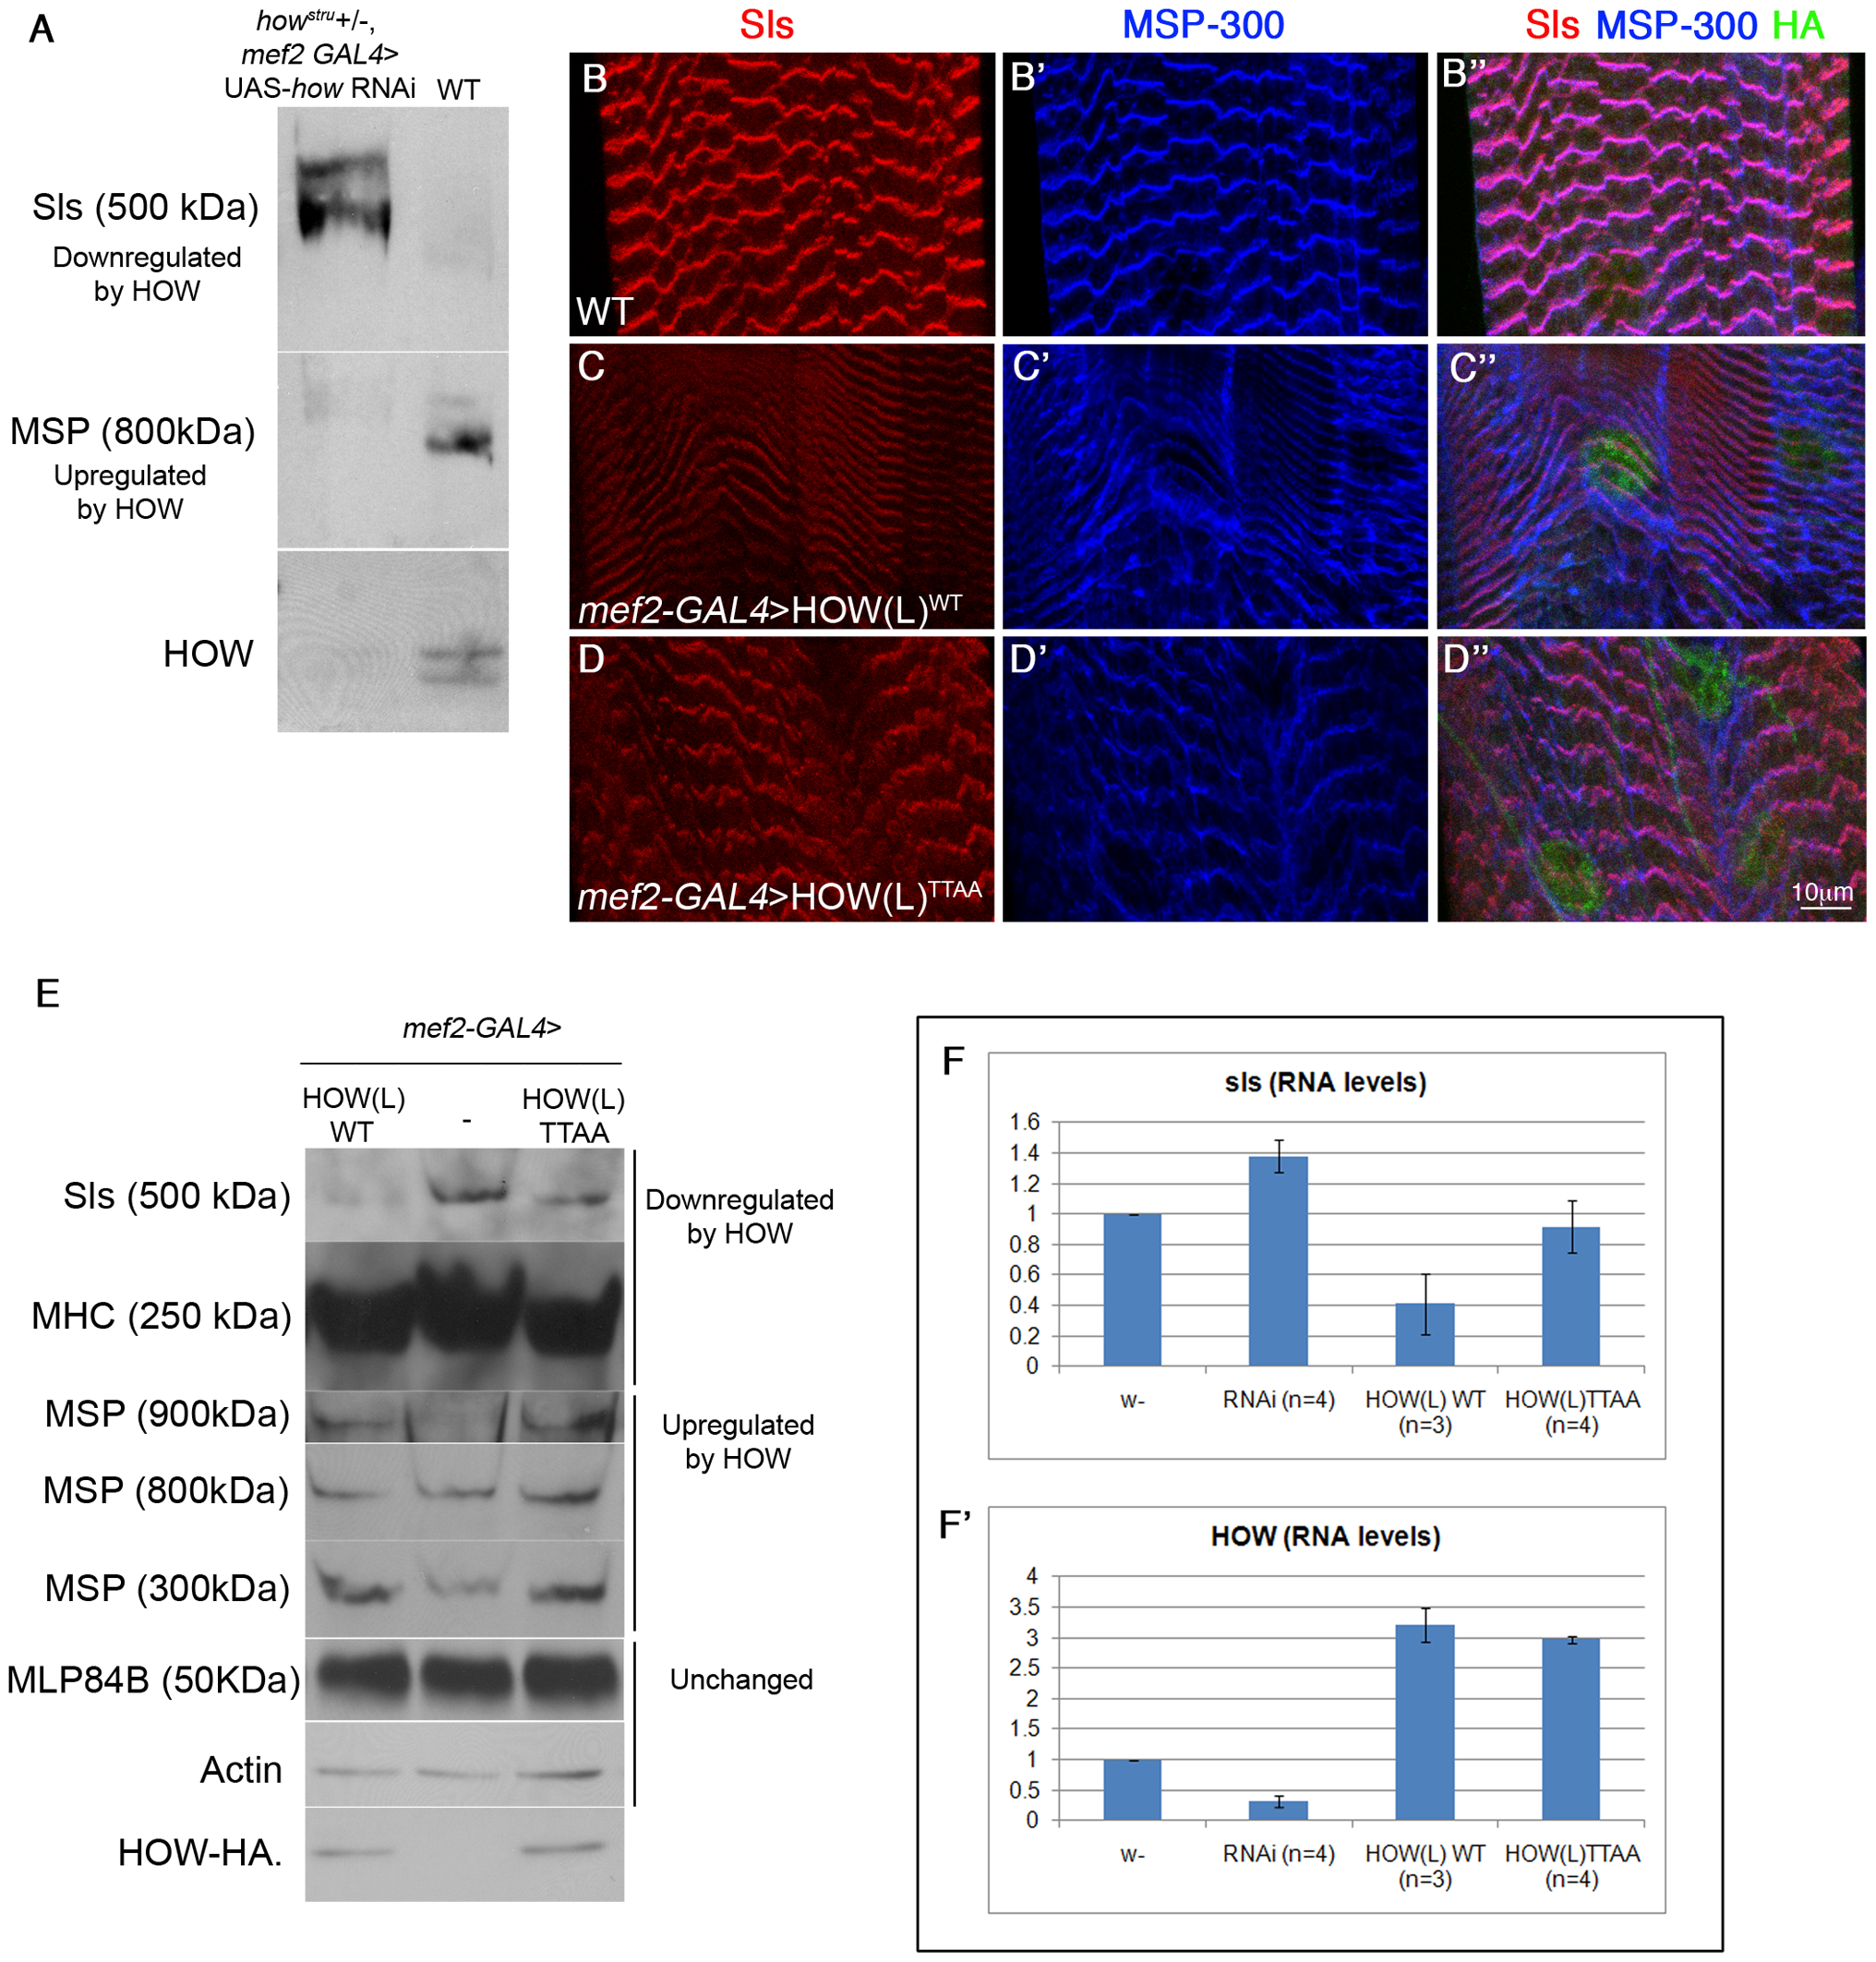 HOW regulates the levels of Sls RNA and protein in a phosphorylation-dependent manner.